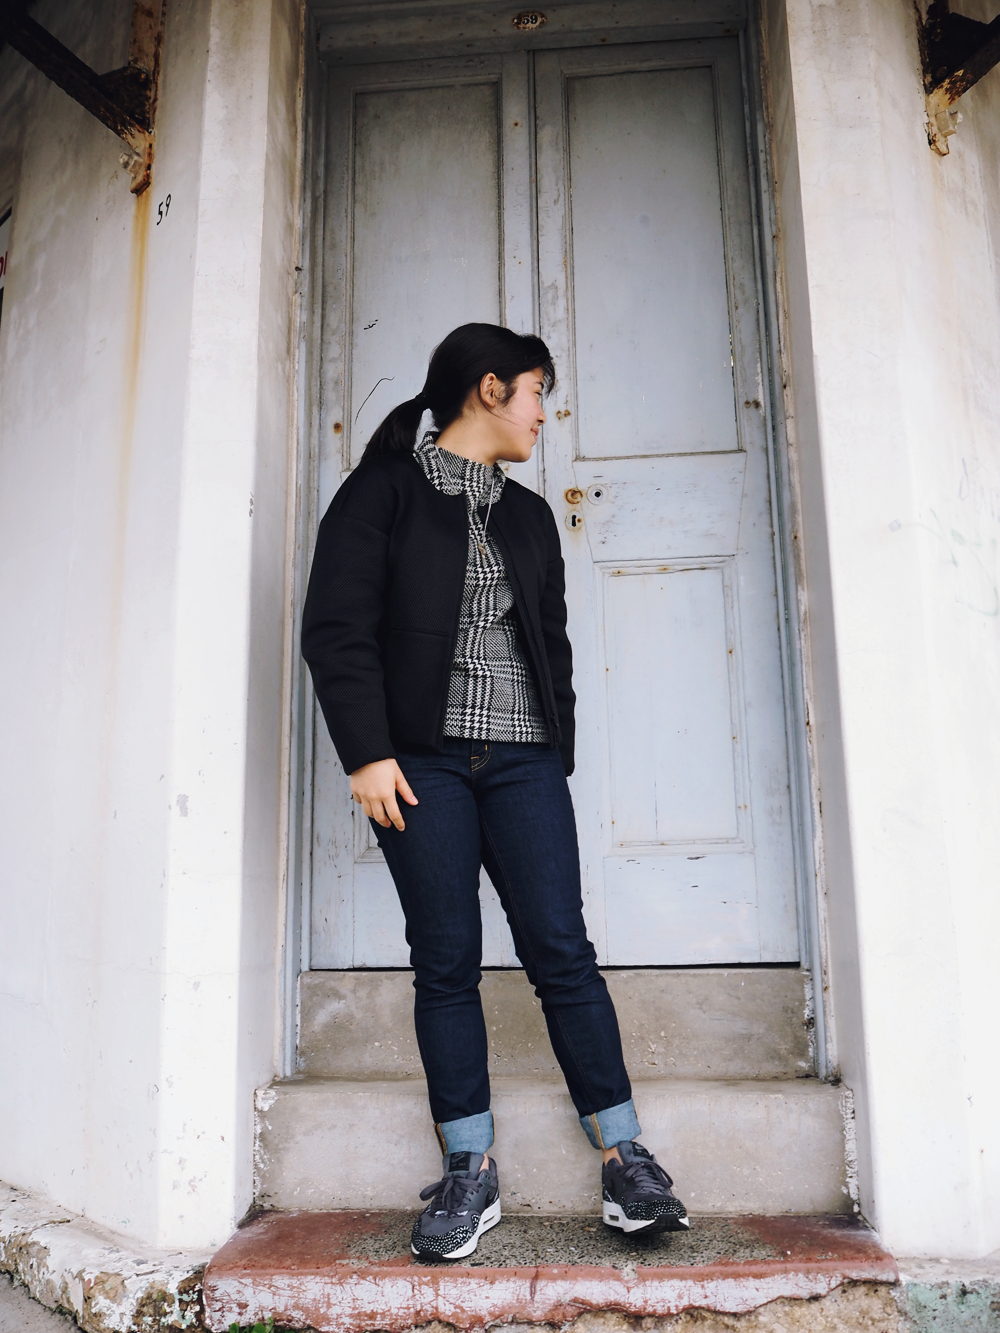 elashock, fashion, personal style, outfit, ootd, style, blog, blogger, japanese, english, australia, sydney, karen okuda, comme ca, comme ca du mode, five foxes, muji, portmans, nike, nike air, sneakers, エラショック, ファッション, ブロガー, ブログ, 私服, コーディネート, コーデ, 洋服, コムサ, コムサデモード, コムサイズム, 無印, 無印良品, ナイキ, オーストラリア, 日本語, 英語